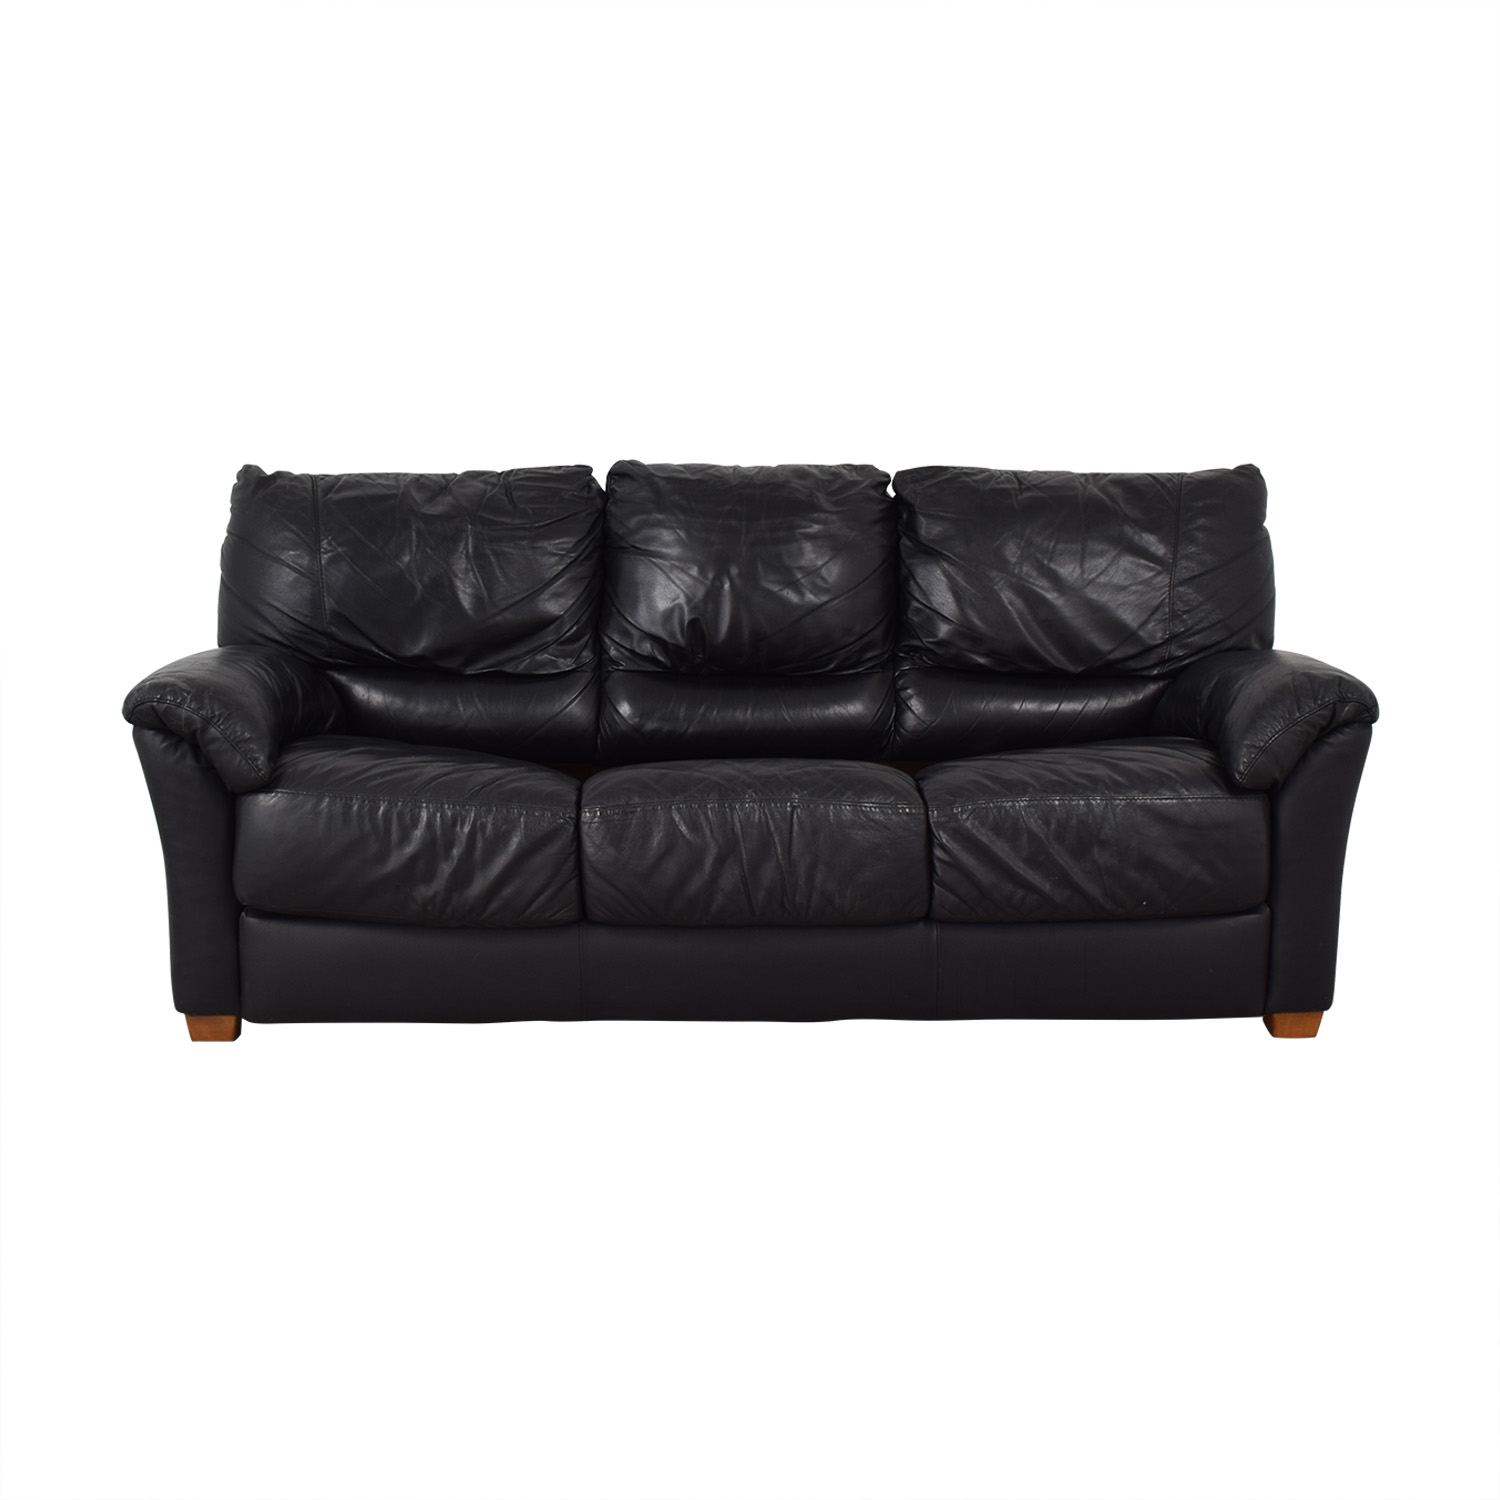 Black Three-Cushion Convertible Full Sleeper Sofa / Sofas